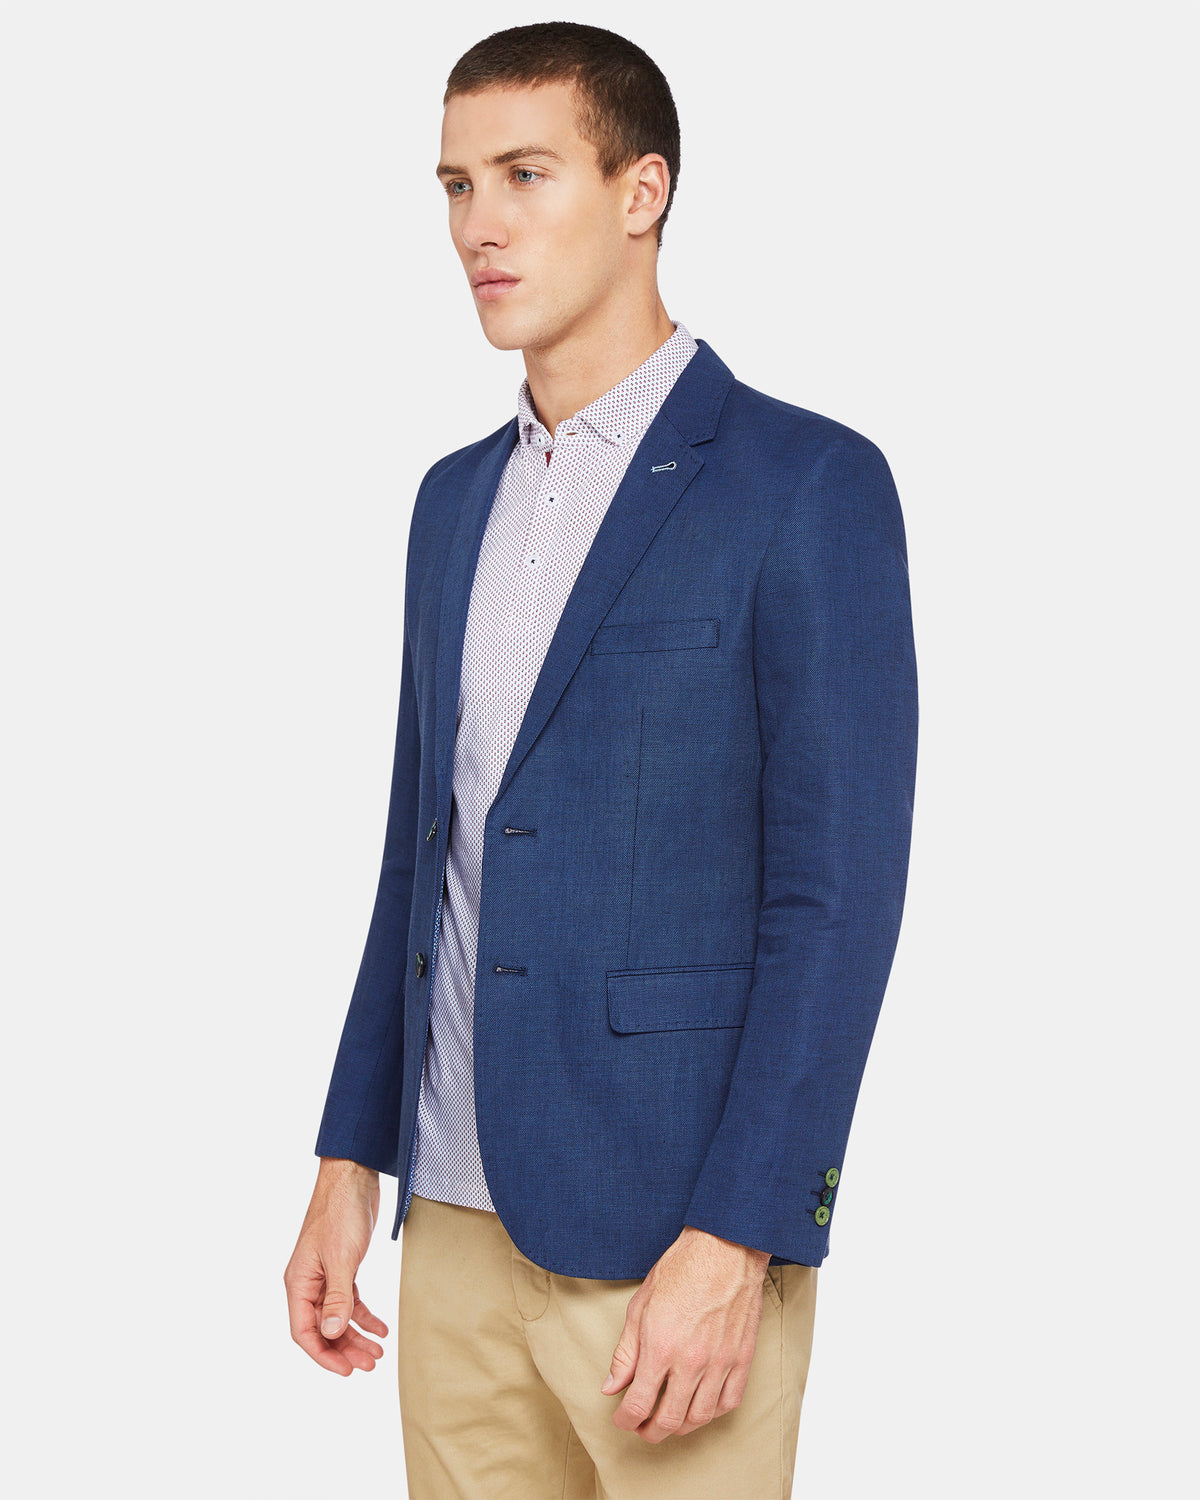 LARKIN COTTON/LINEN BLAZER BLUE